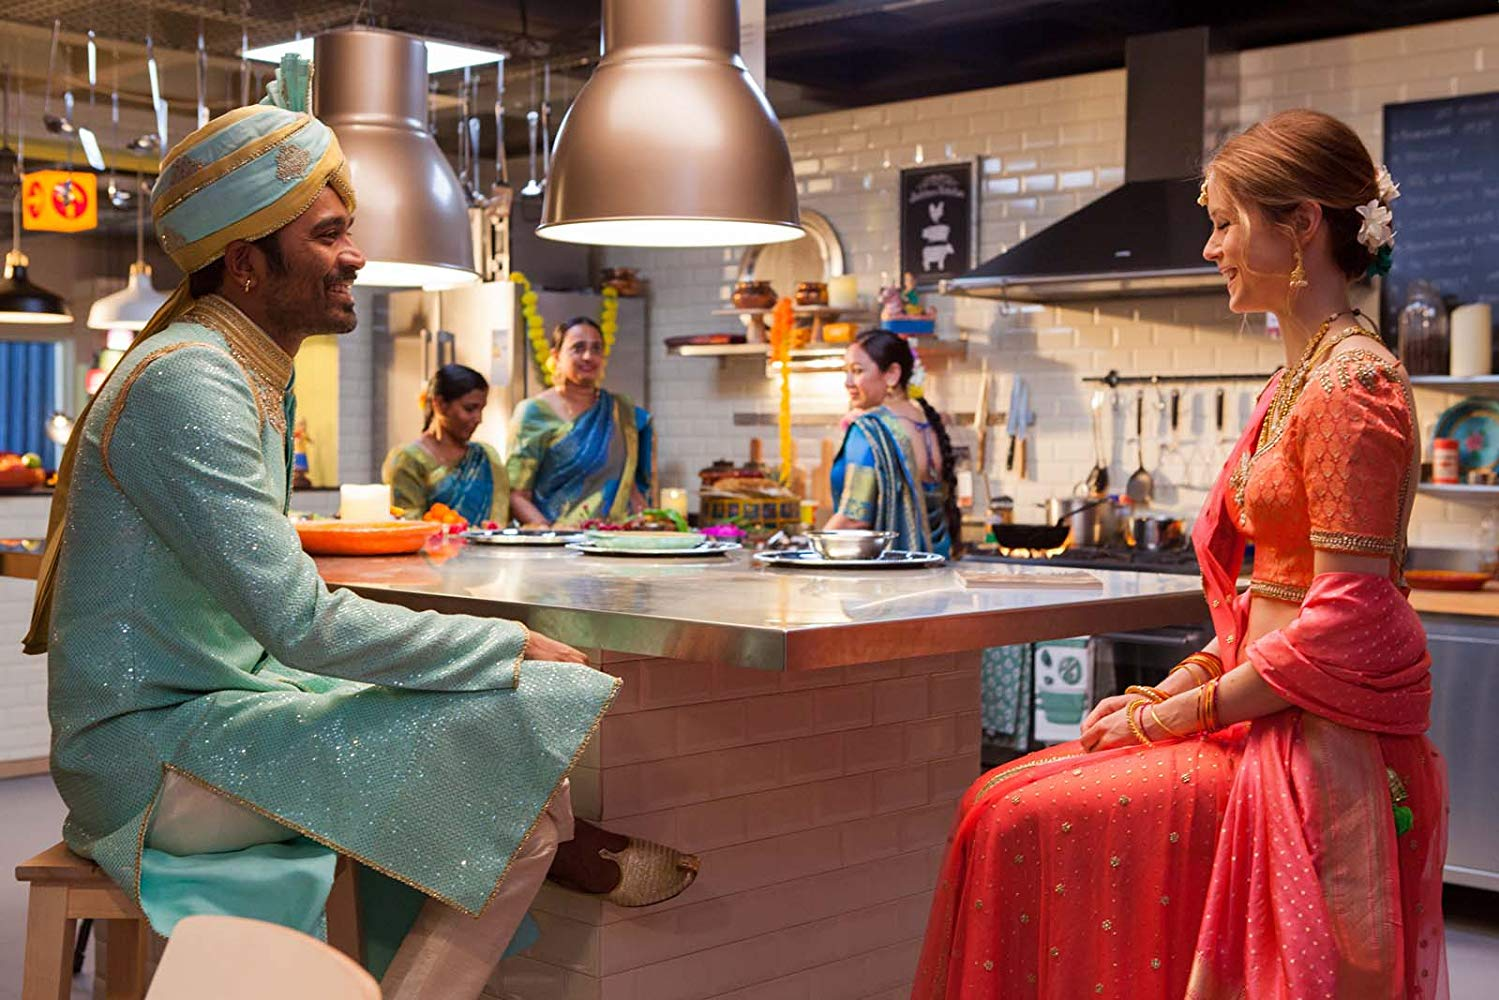 The-Extraordinary-Journey-of-the-Fakir (2)